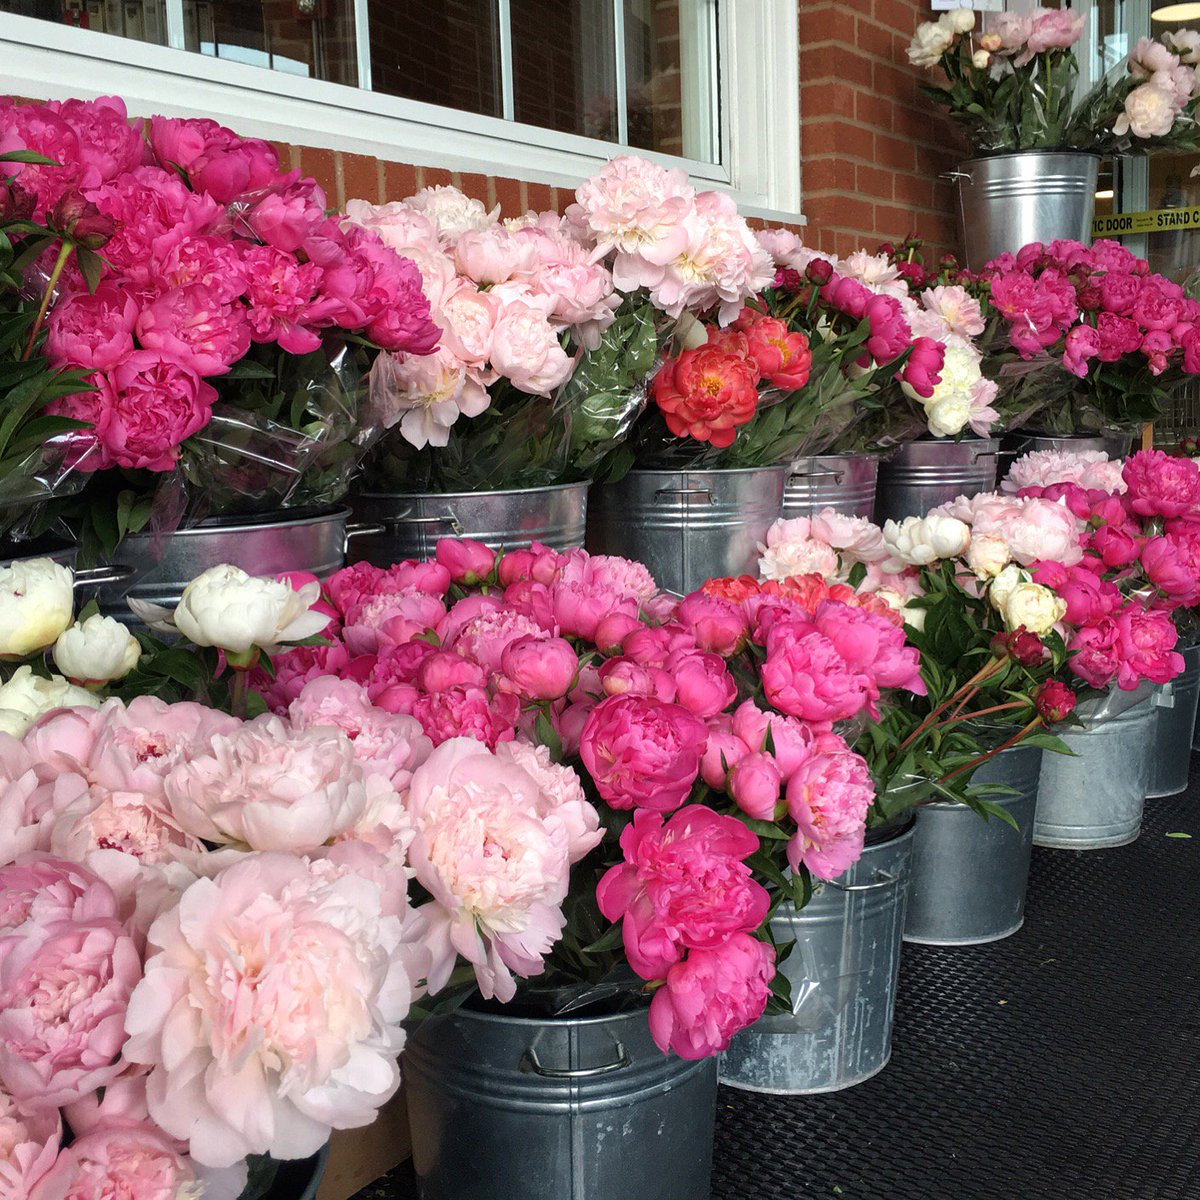 #Peonies have arrived! Add some fragrance to your weekend. #HeinensBlooms https://t.co/MtmSZG202d